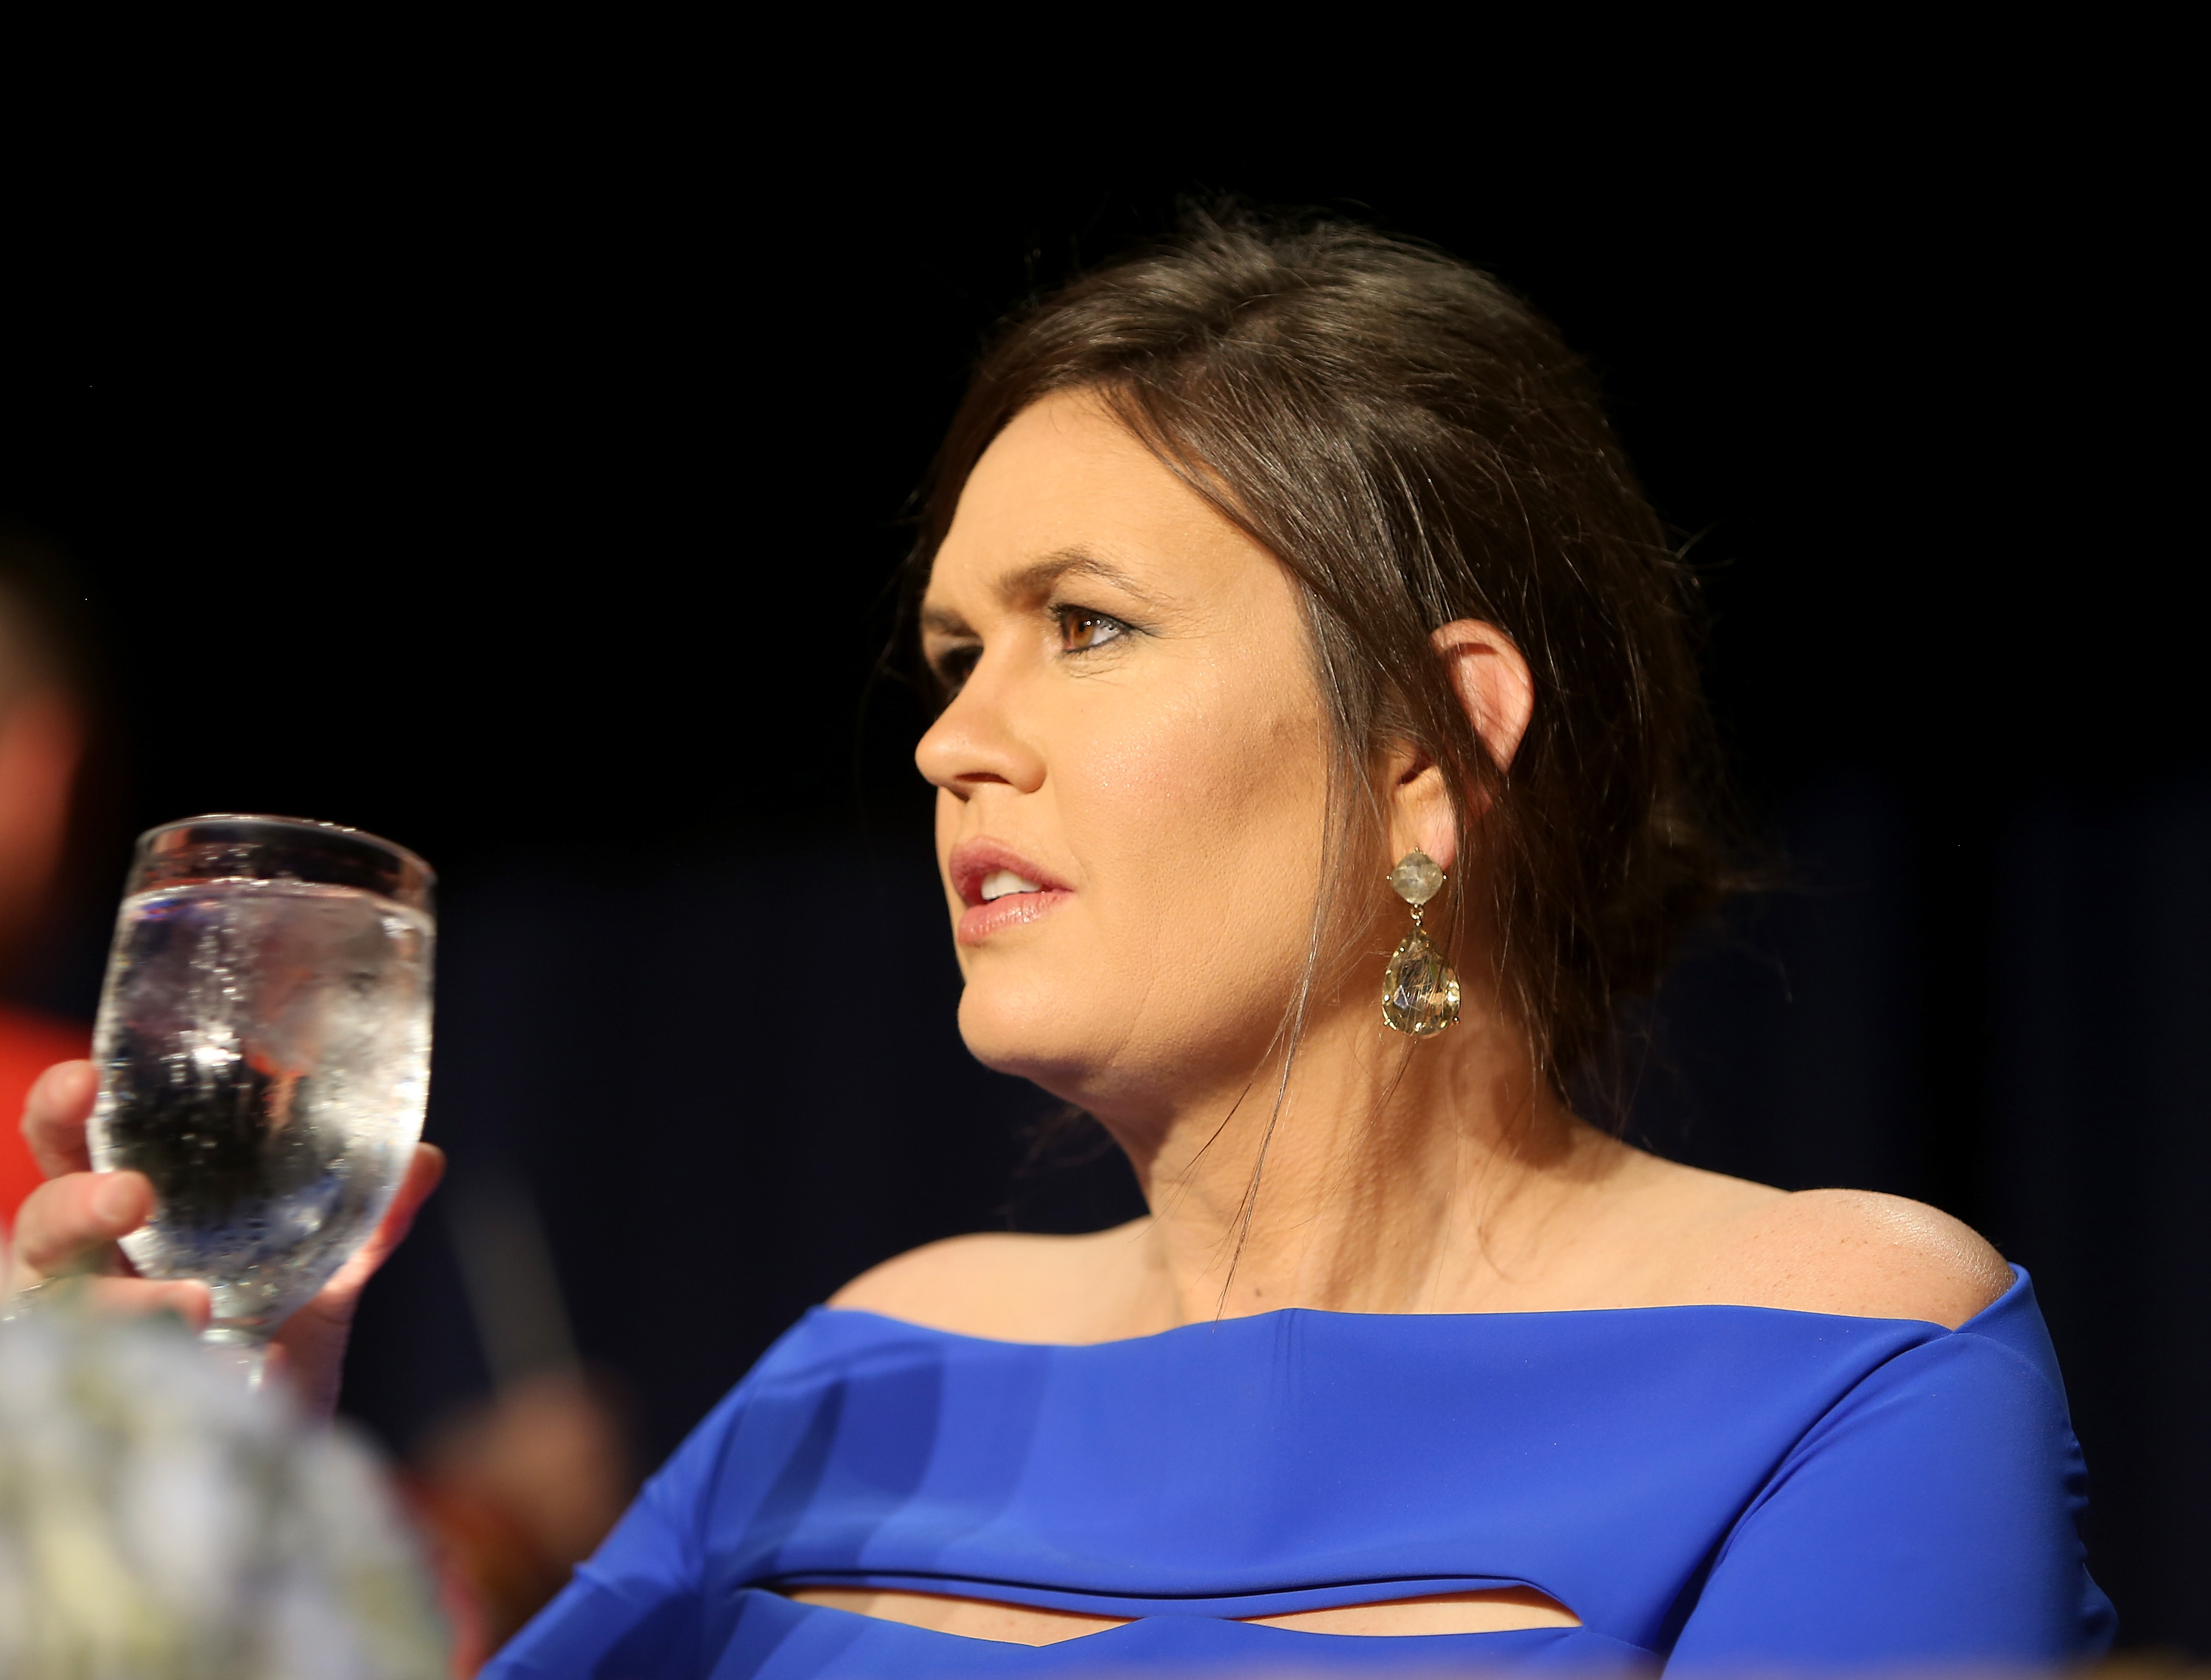 WASHINGTON, DC - APRIL 28: Sarah Huckabee Sanders attends the 2018 White House Correspondents' Dinner at Washington Hilton on April 28, 2018 in Washington, DC. (Photo by Tasos Katopodis/Getty Images)